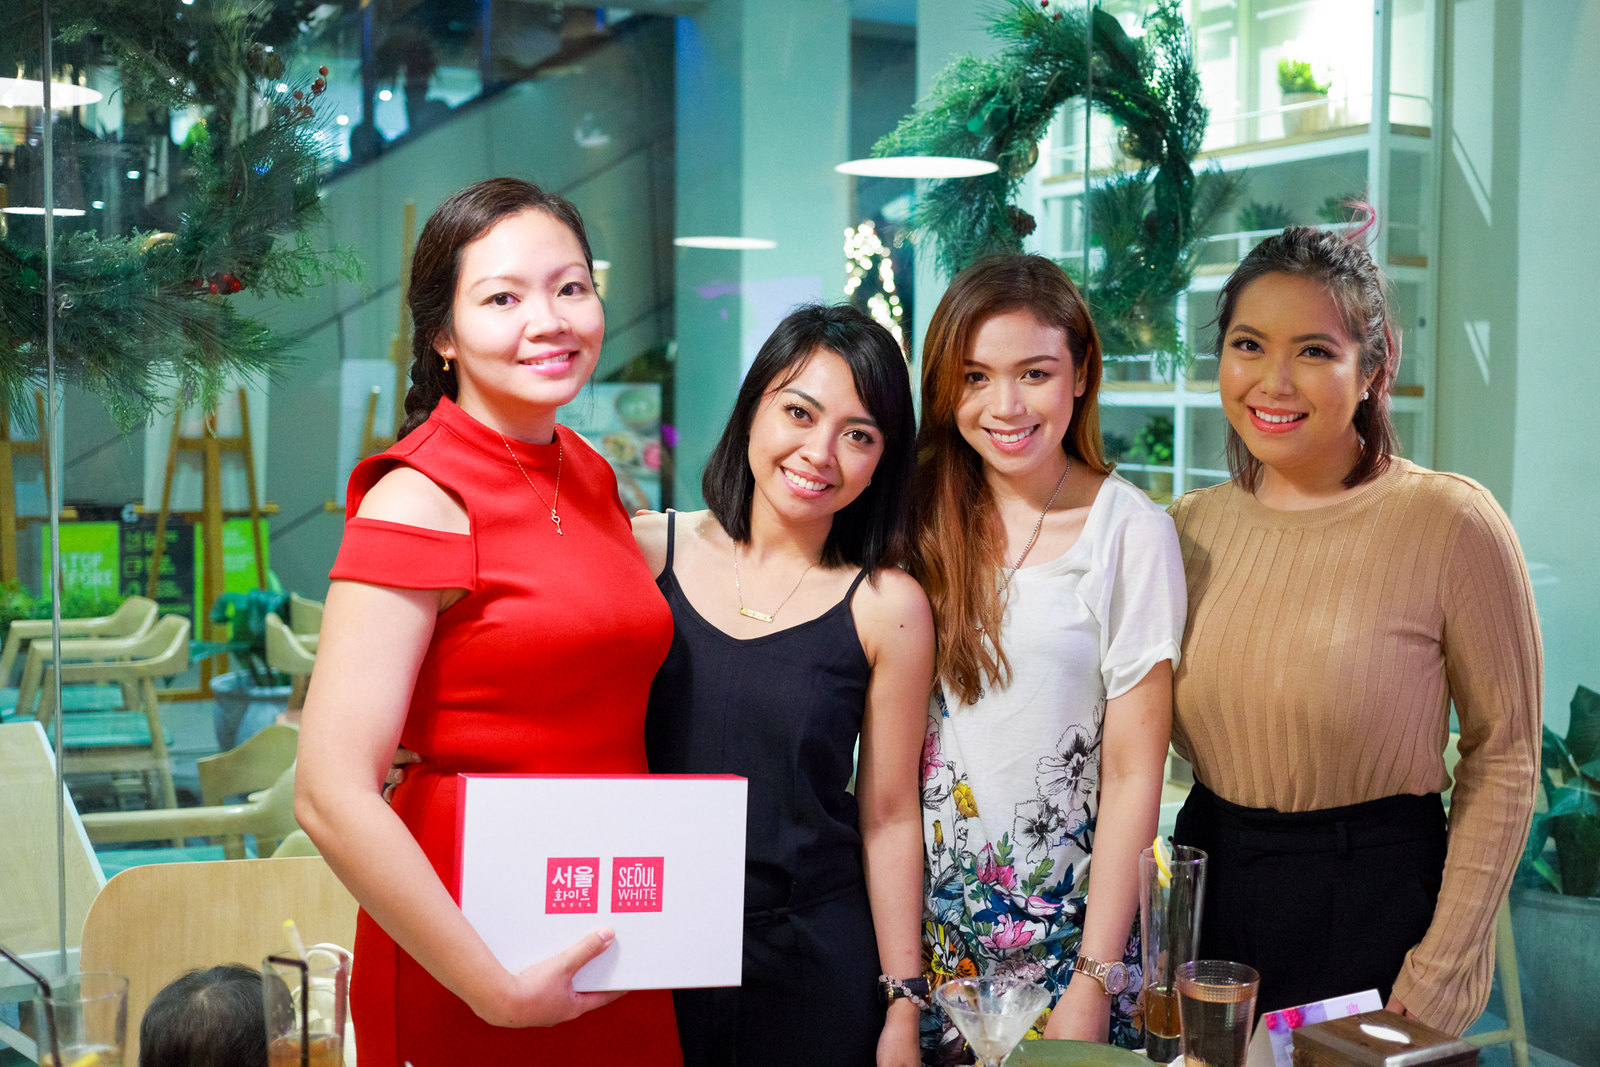 With bloggers Genzel Habab of Gen-zel - She Sings Beauty, vlogger Joyce Sola of CandyLoveArt and vlogger Say Tioco